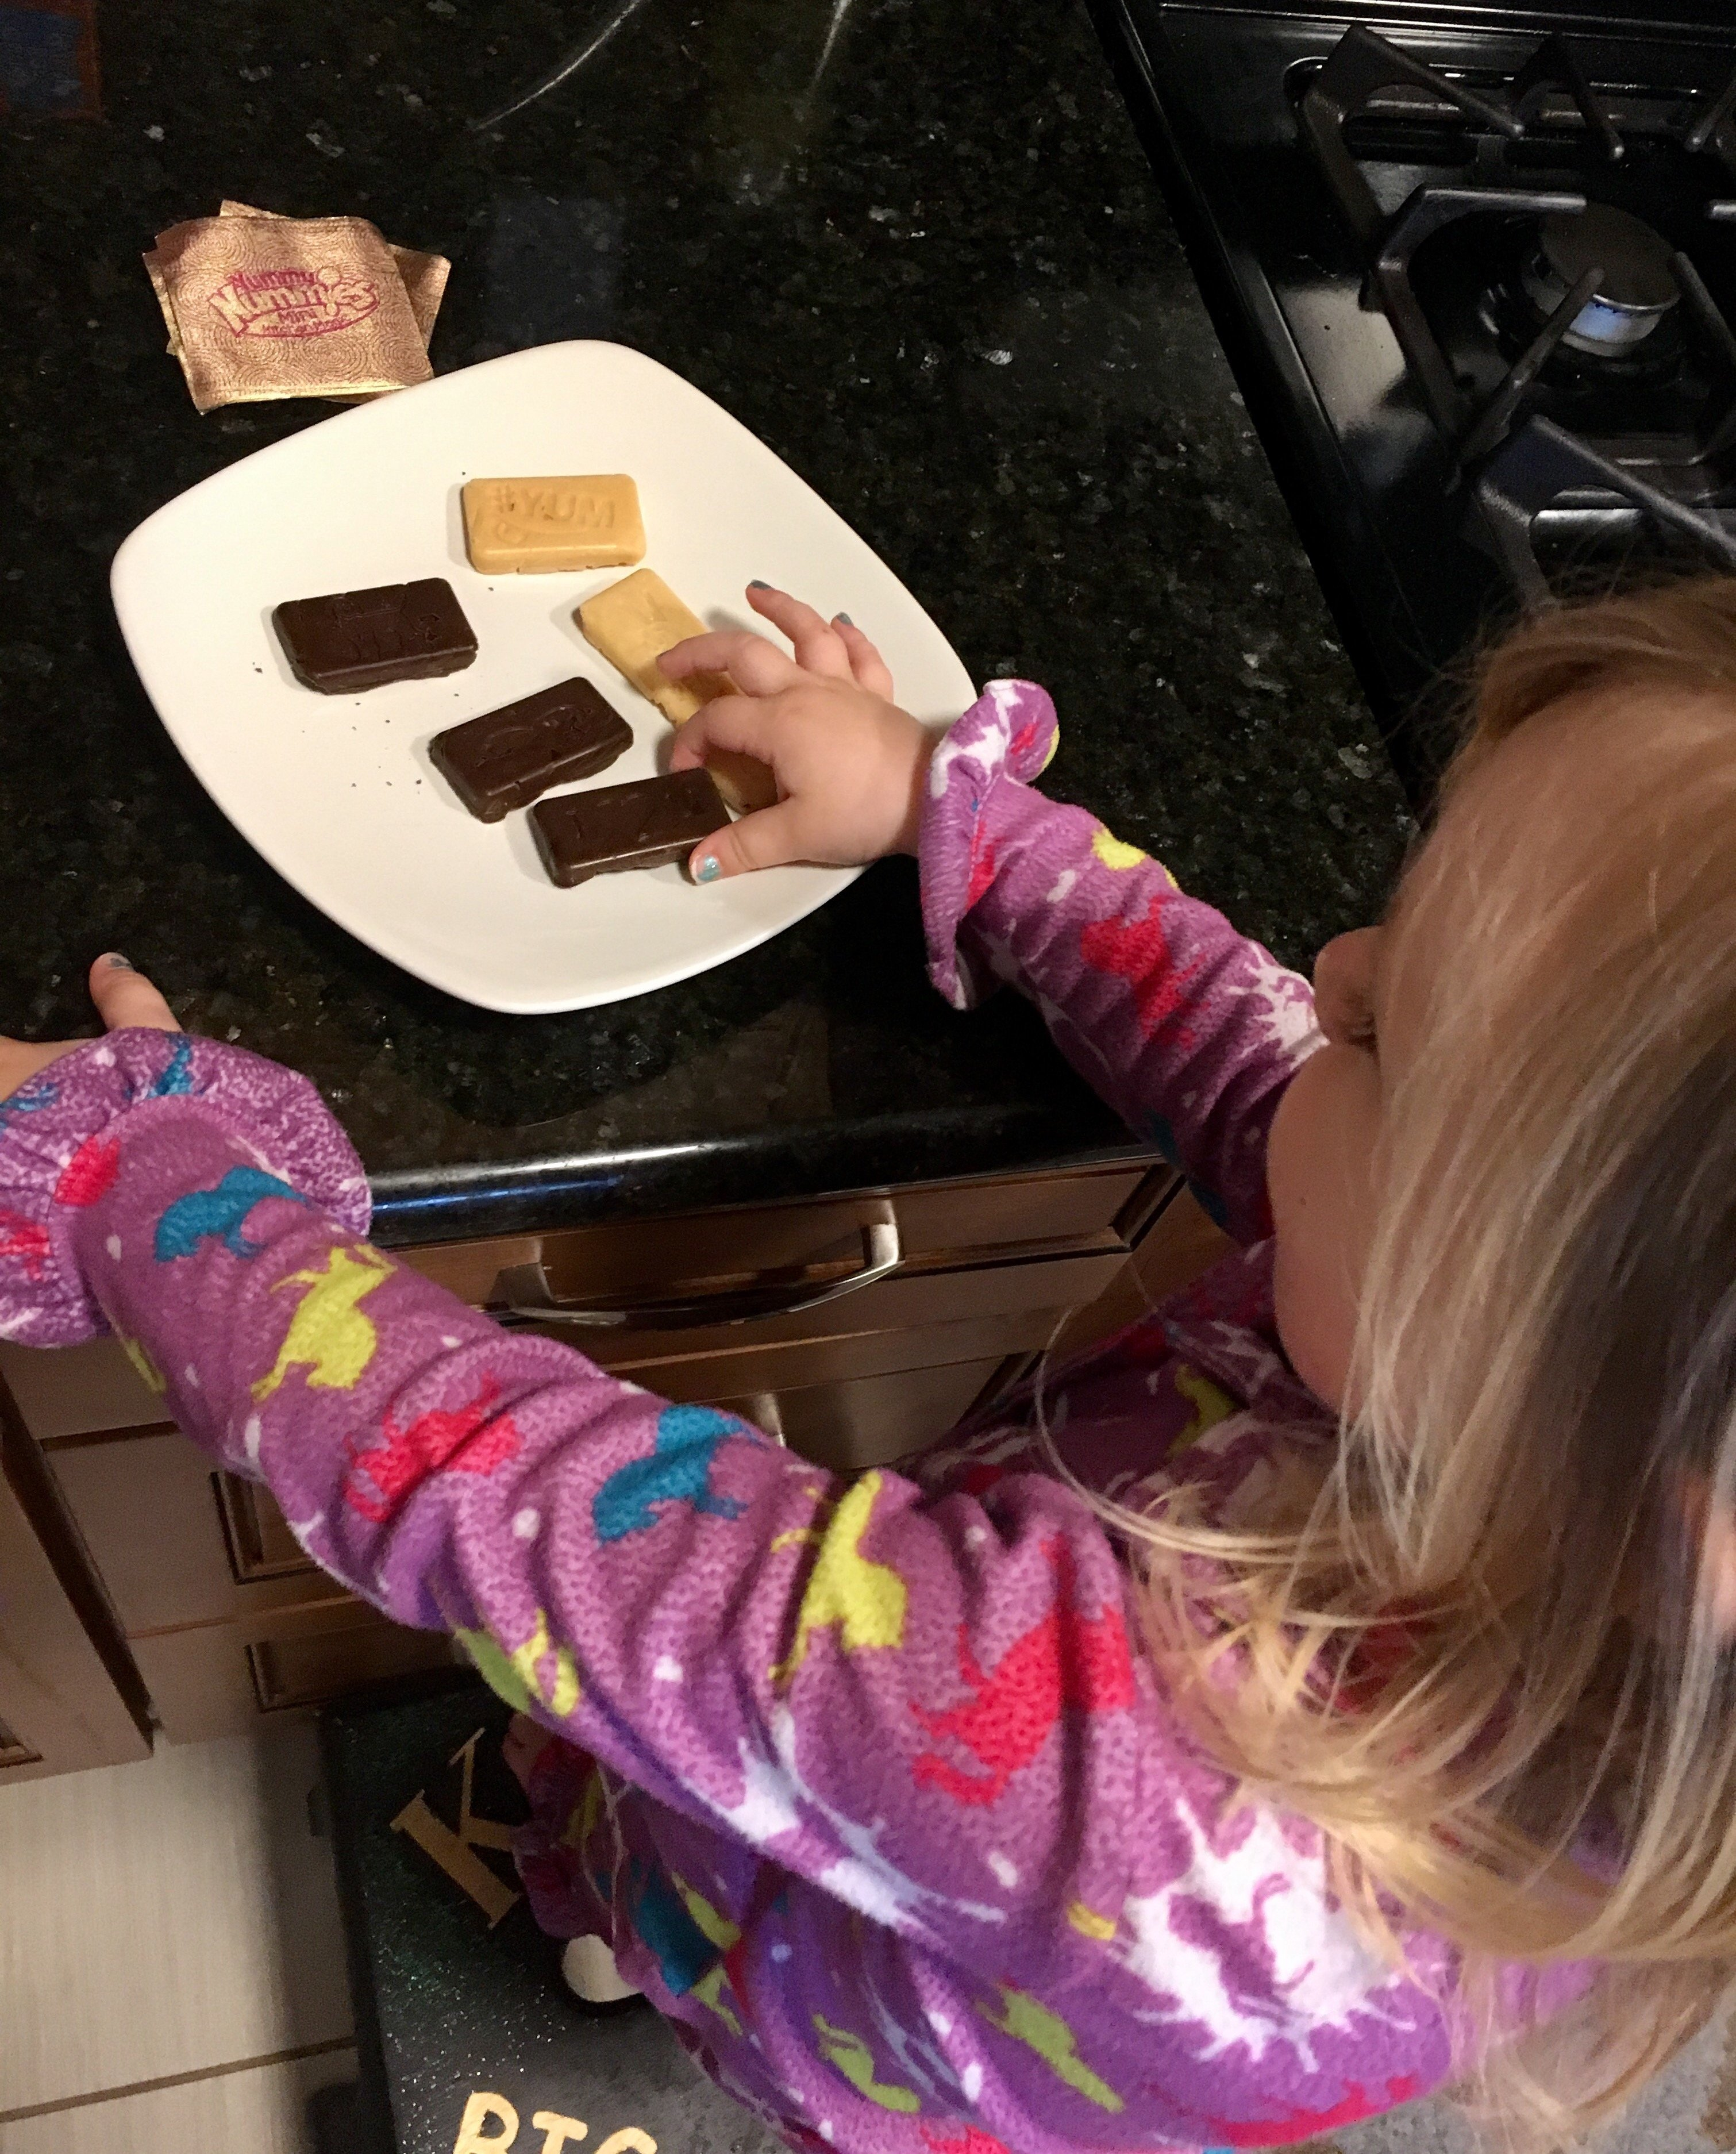 Making chocolate with kids | candy making | rainy day kid activities | candy making idea | family life